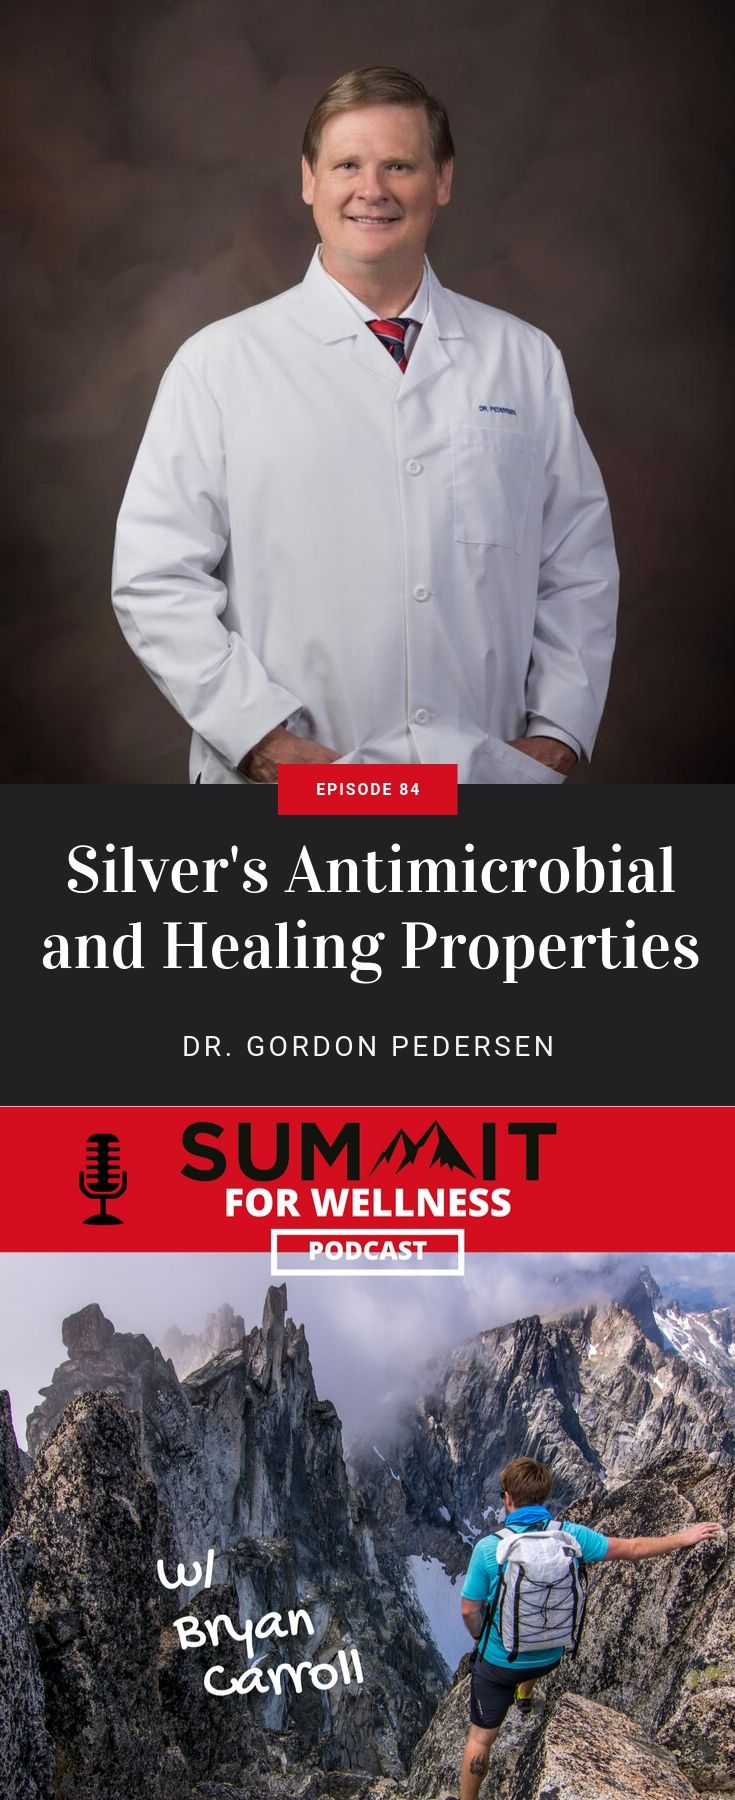 Dr. Gordon Pedersen uses silver as an antimicrobial agent to fight off bacteria, viruses, and fungus.